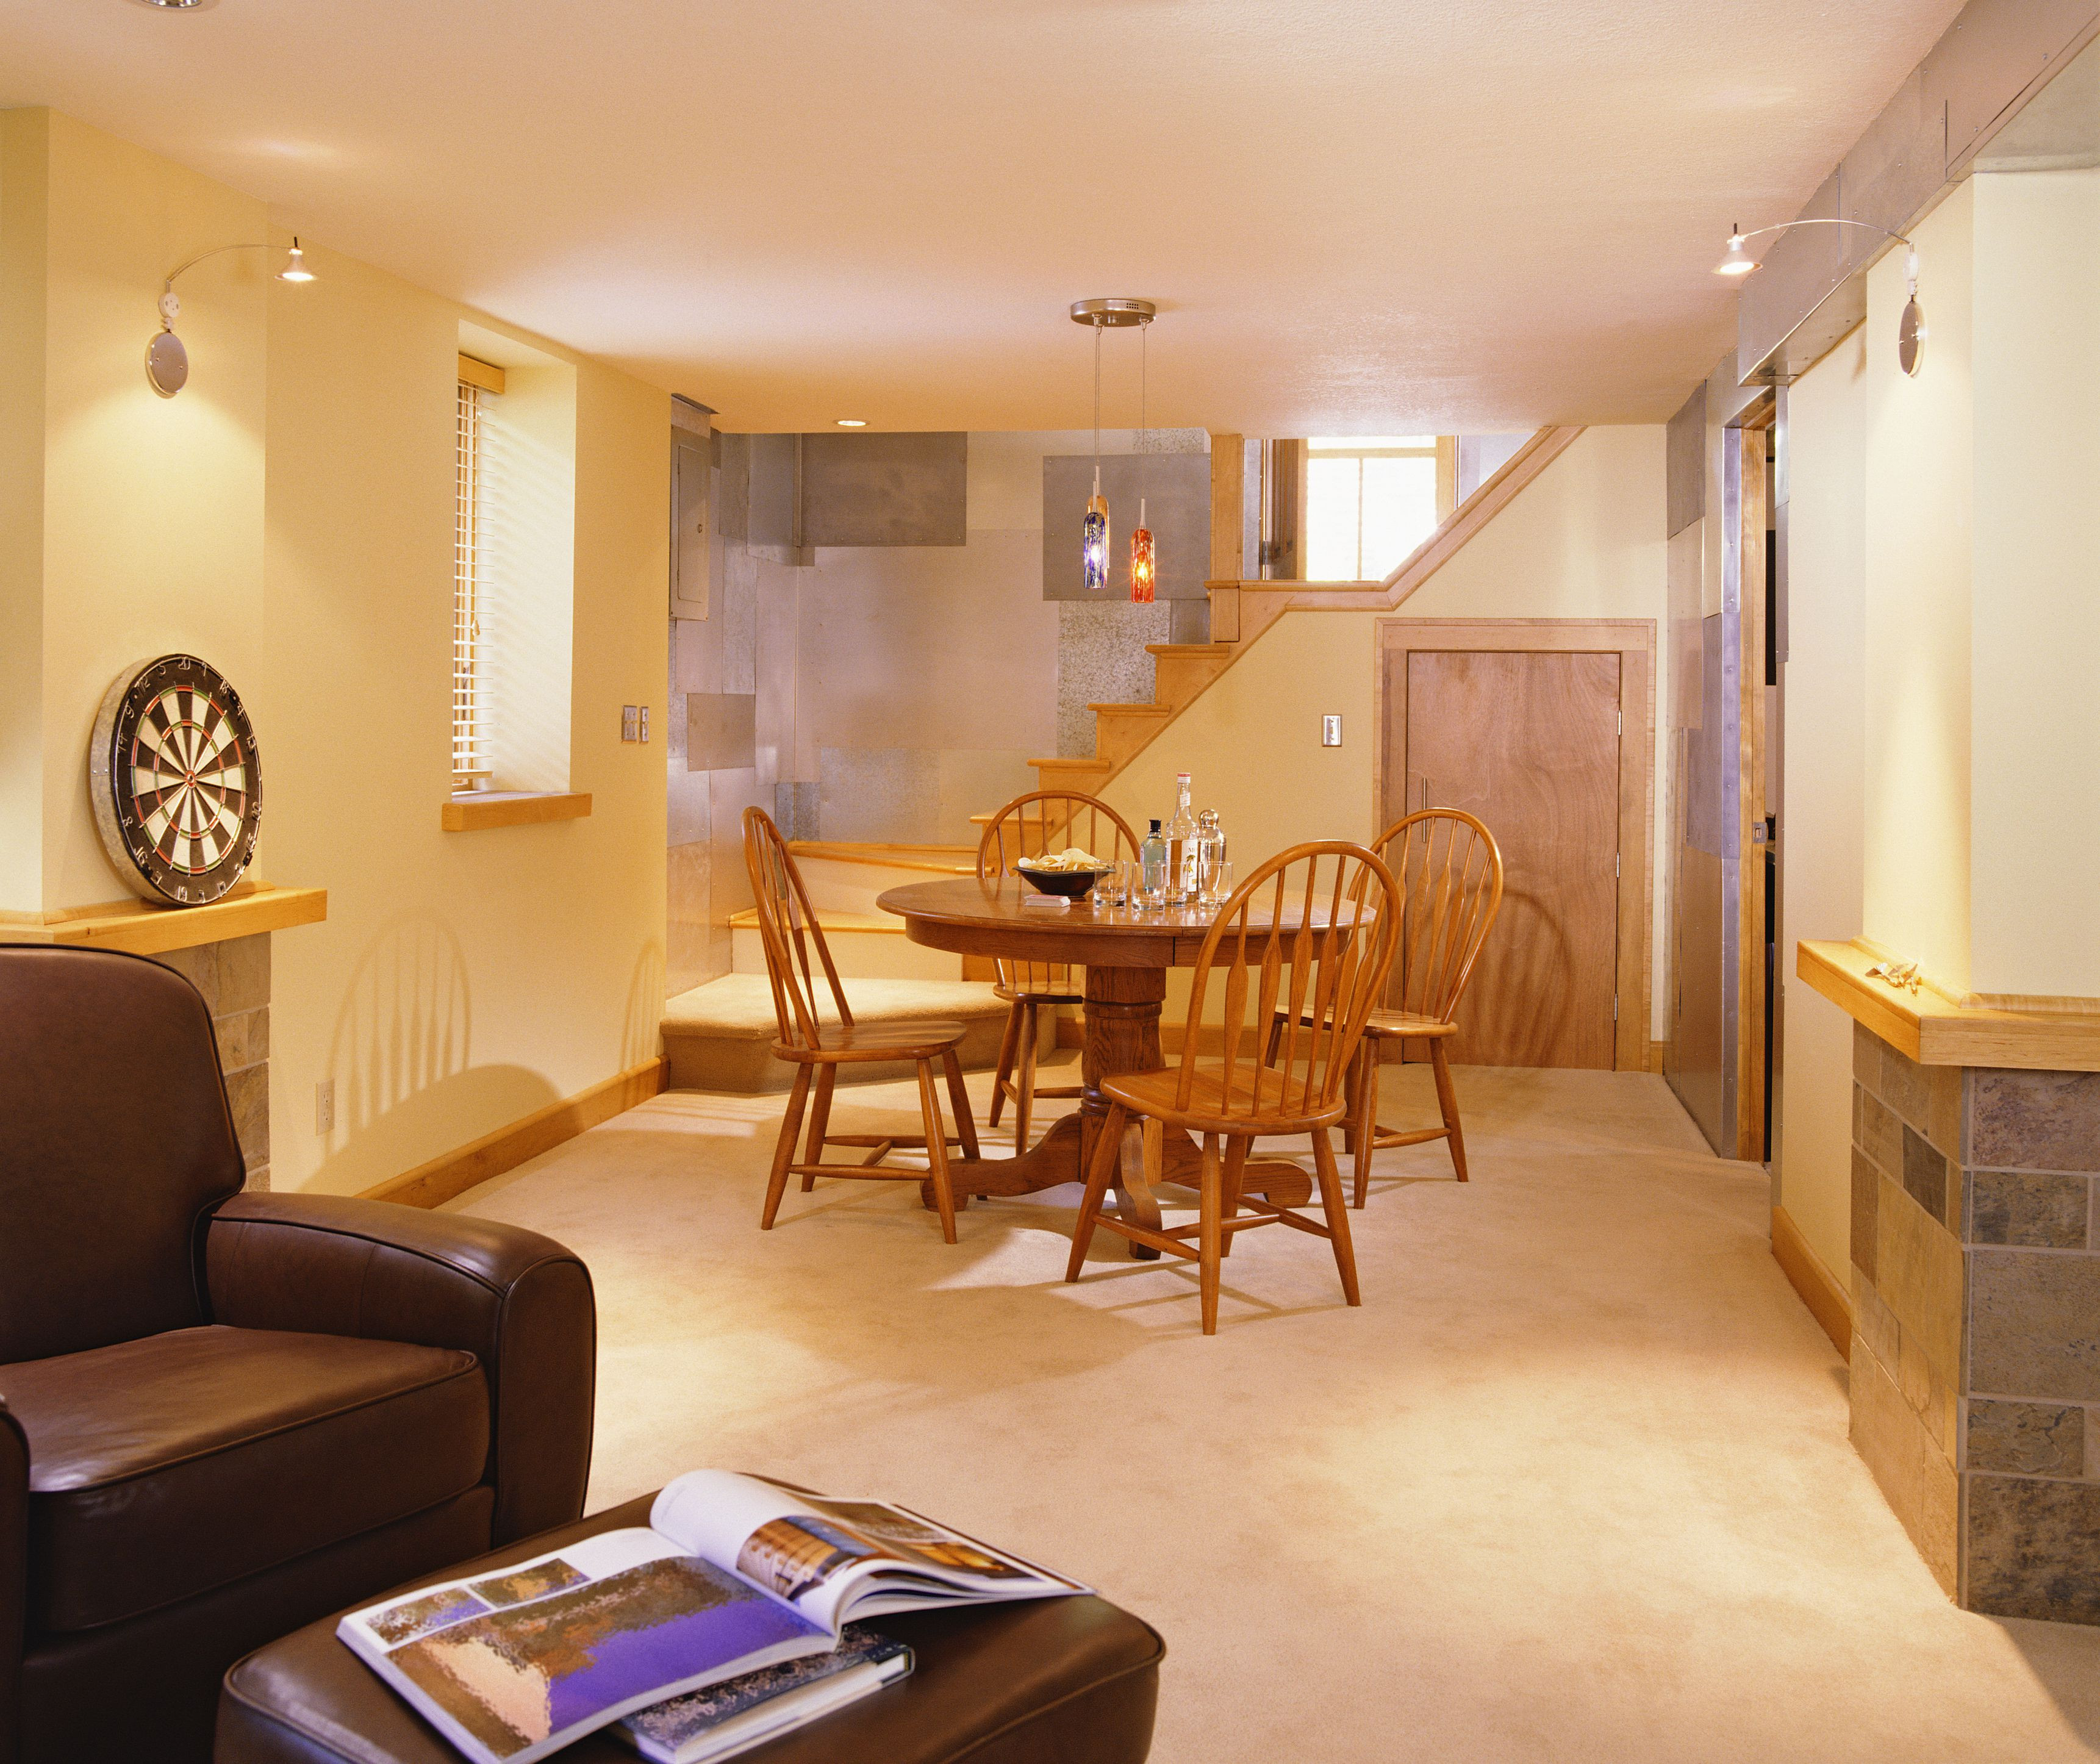 hardwood on concrete basement floor of laminate flooring in a basement setting pertaining to finished basement with metal paneling 523364566 59fcde94aad52b003781f53b